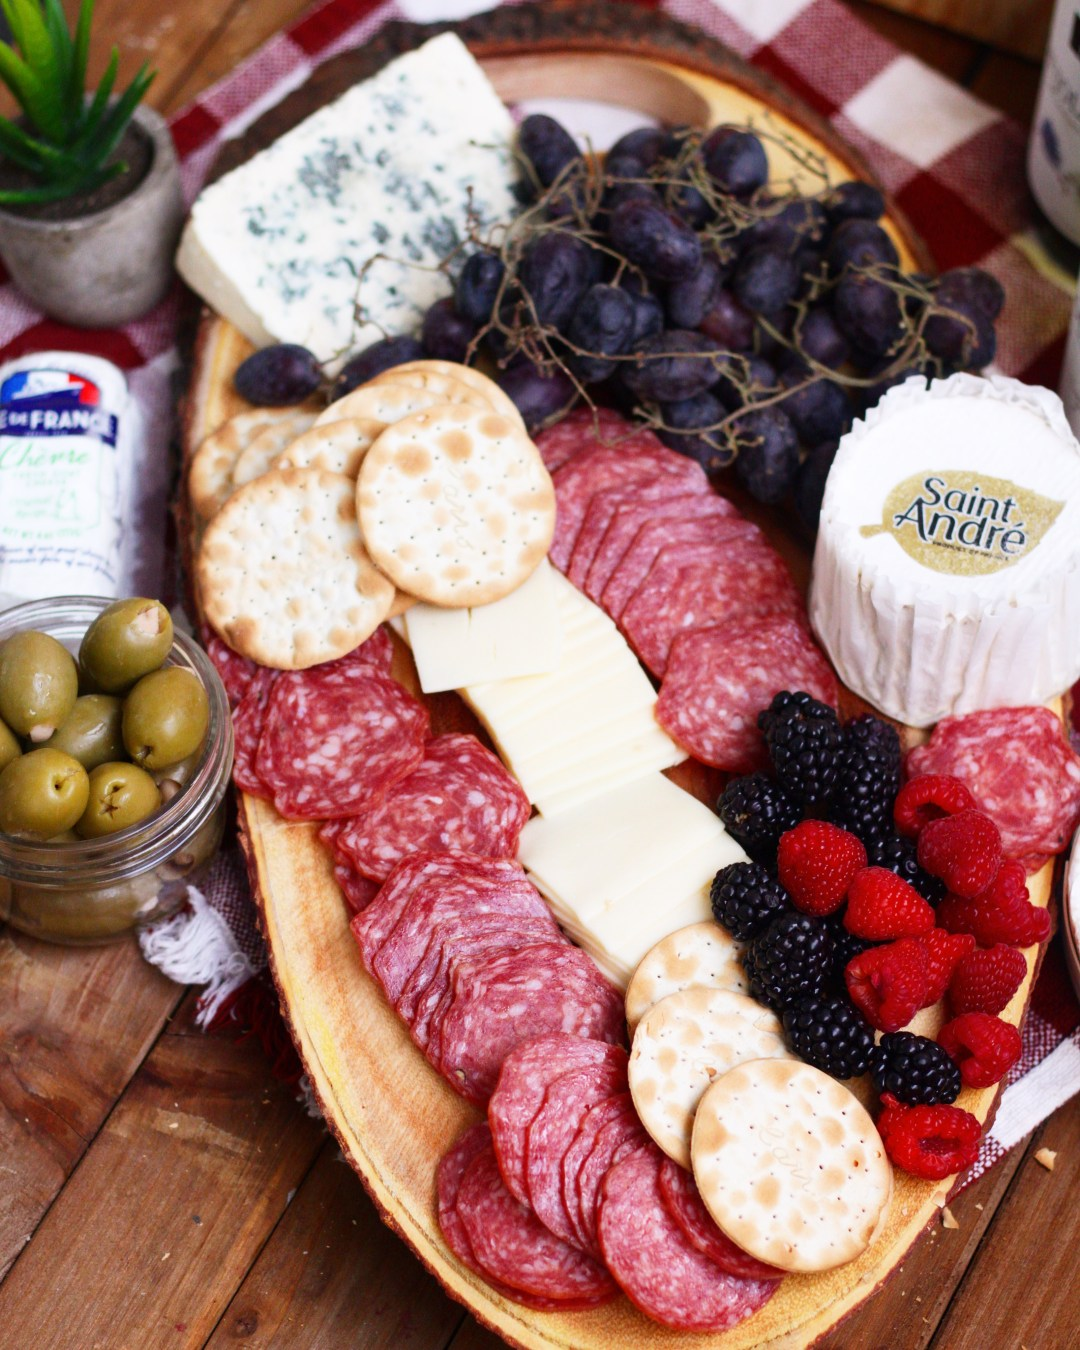 Take a trip to France with this French Inspired Charcuterie Board! Perfect holiday board of assorted meats, cheeses, and wines all from France! #ad